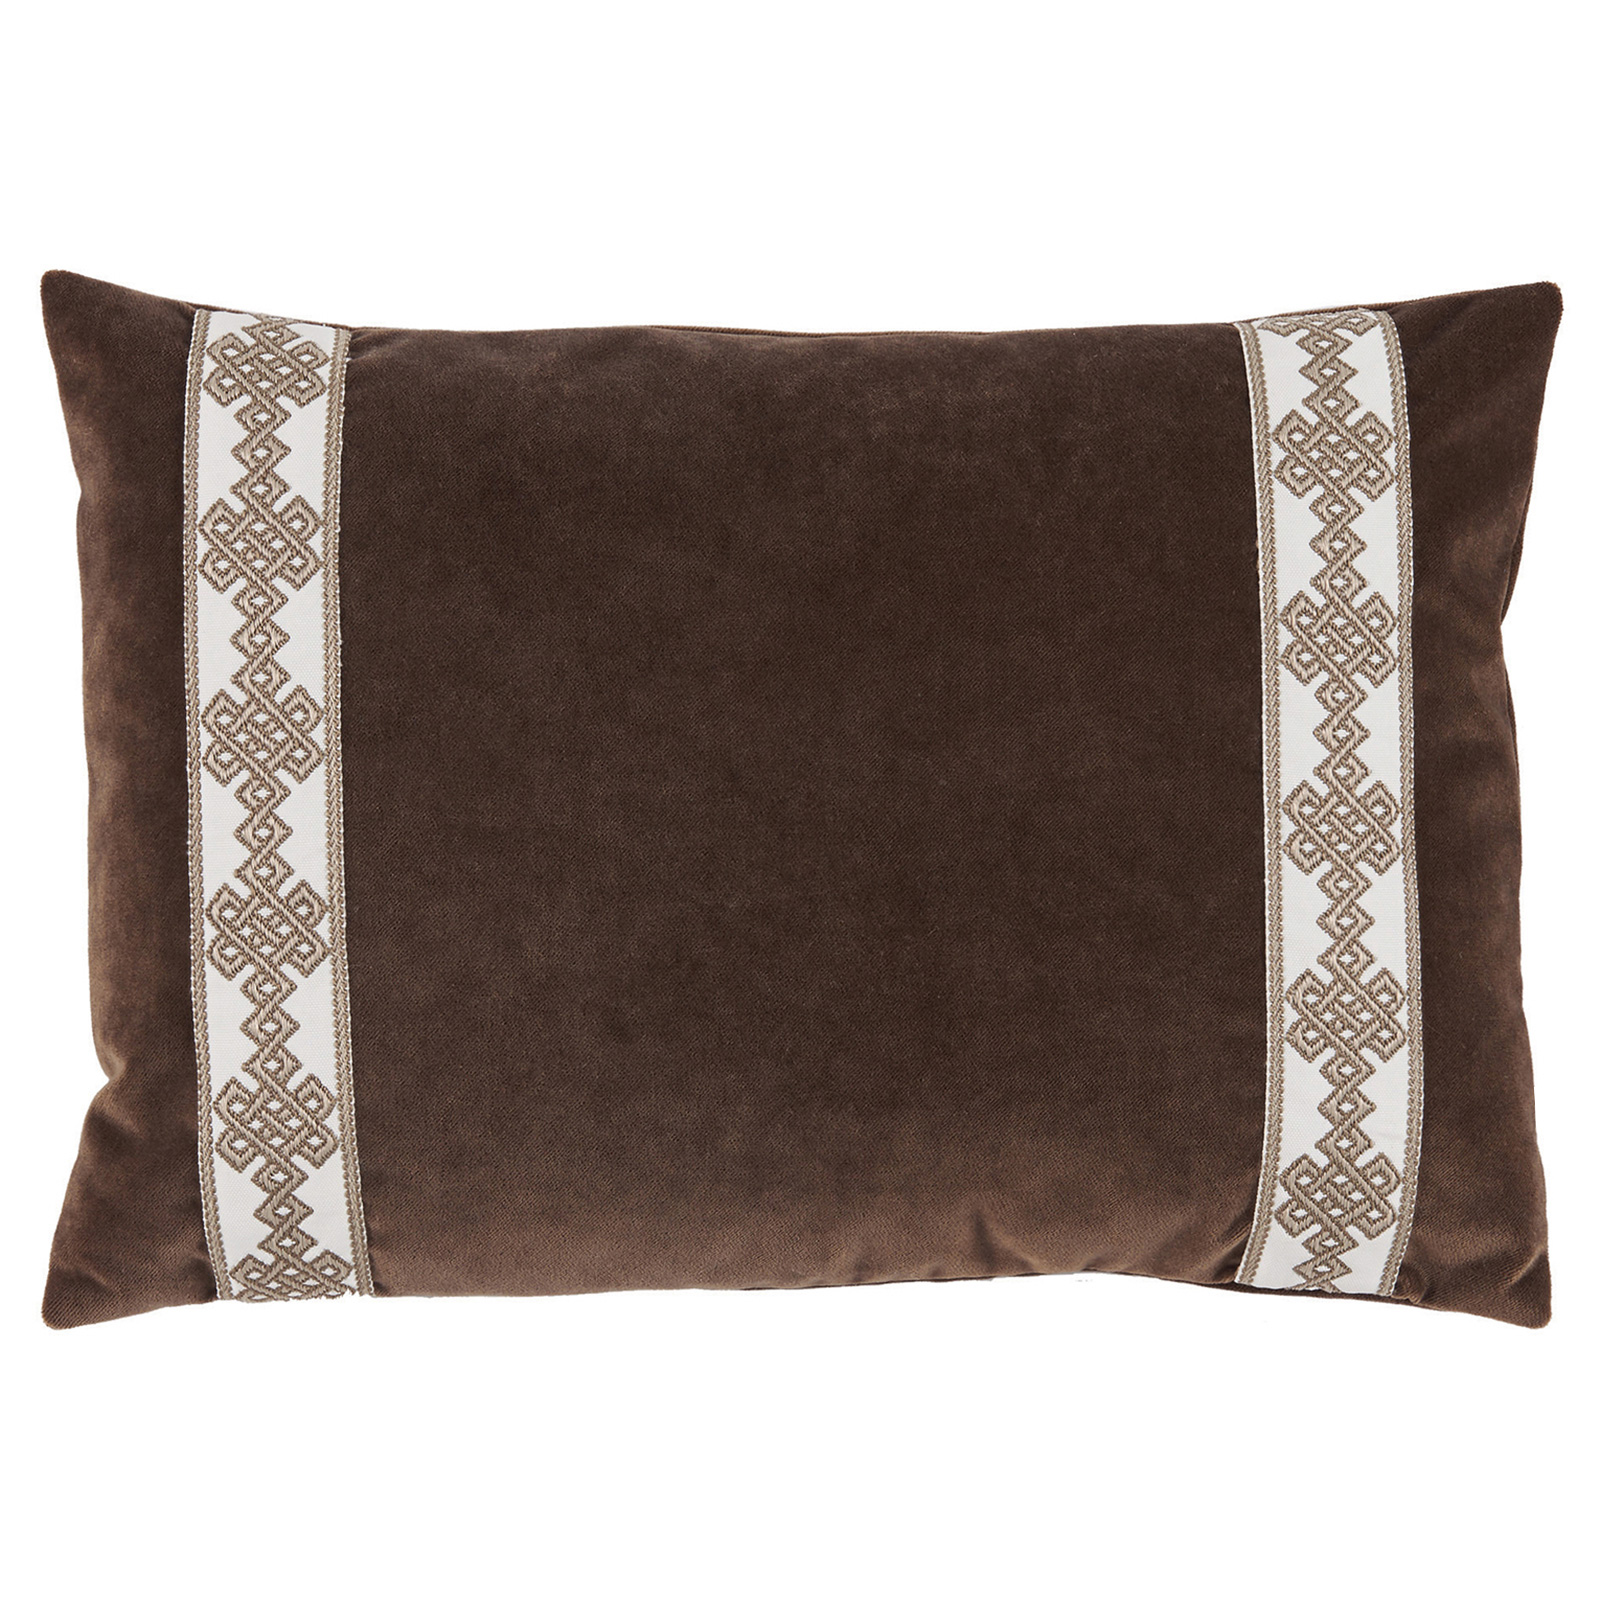 Aida Global Modern Brown Trellis Trim Velvet Pillow - 13x19